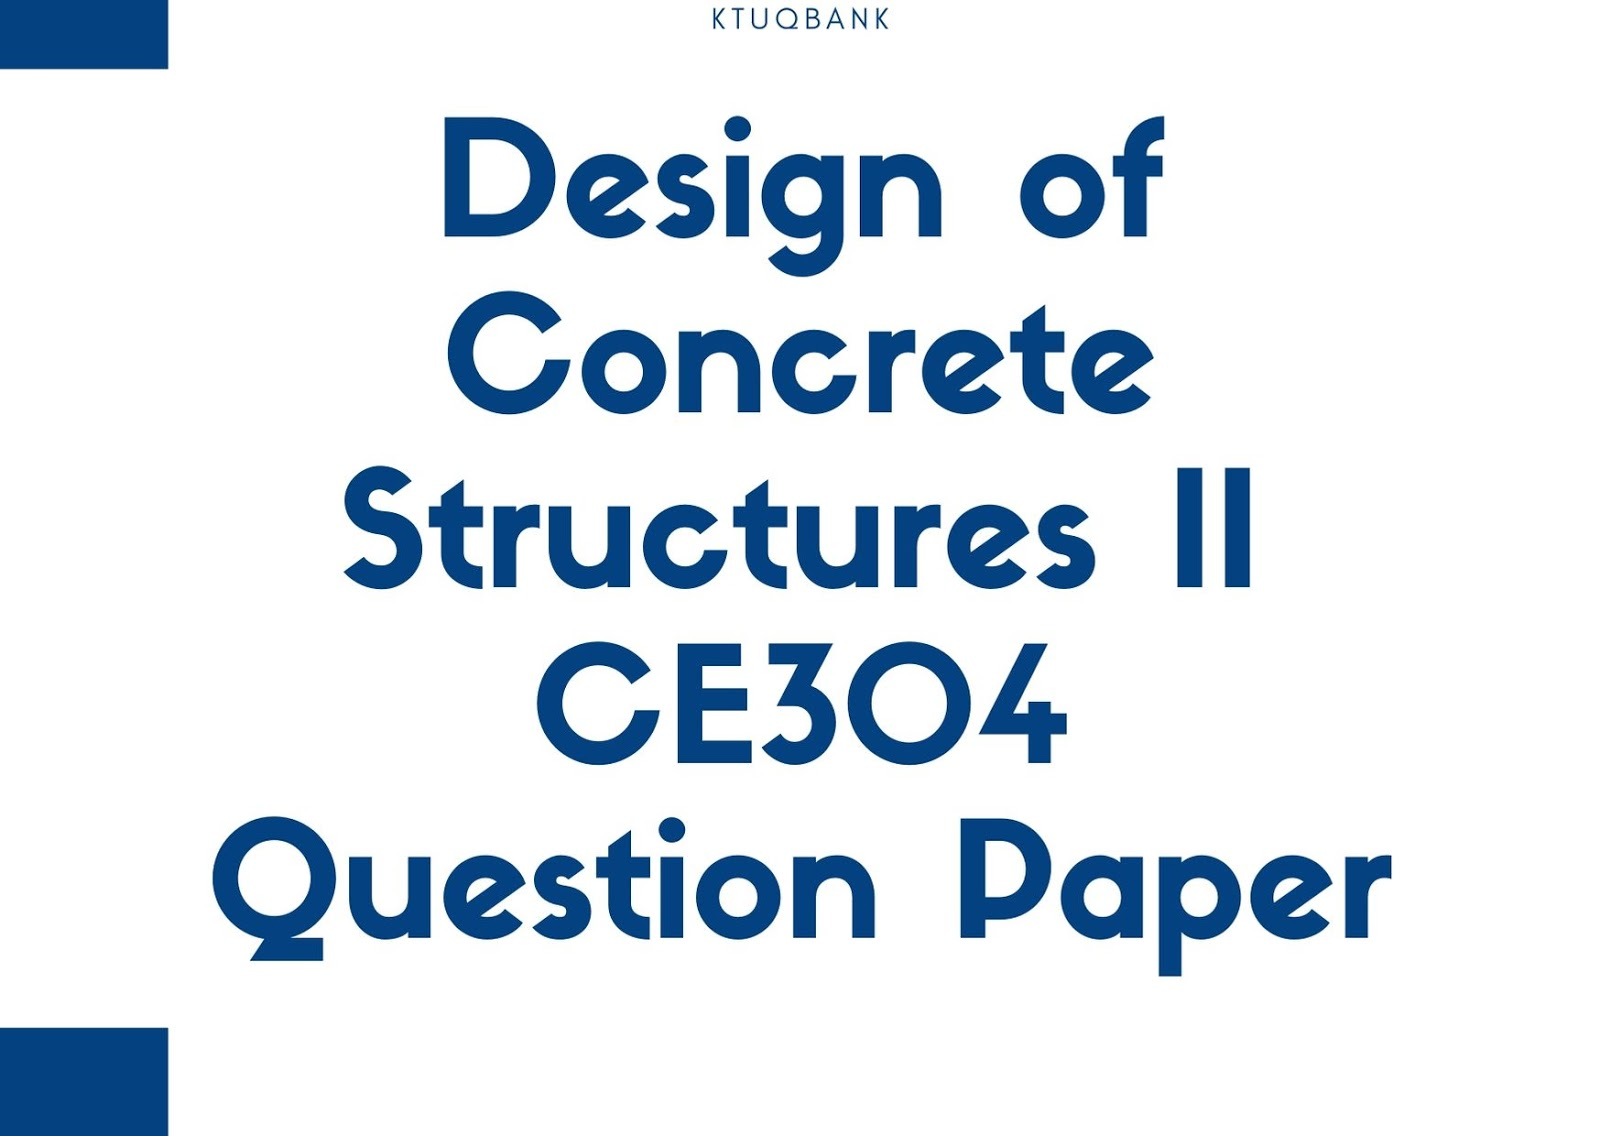 Design of Concrete Structures II | CE304 | Question Papers (2015 batch)